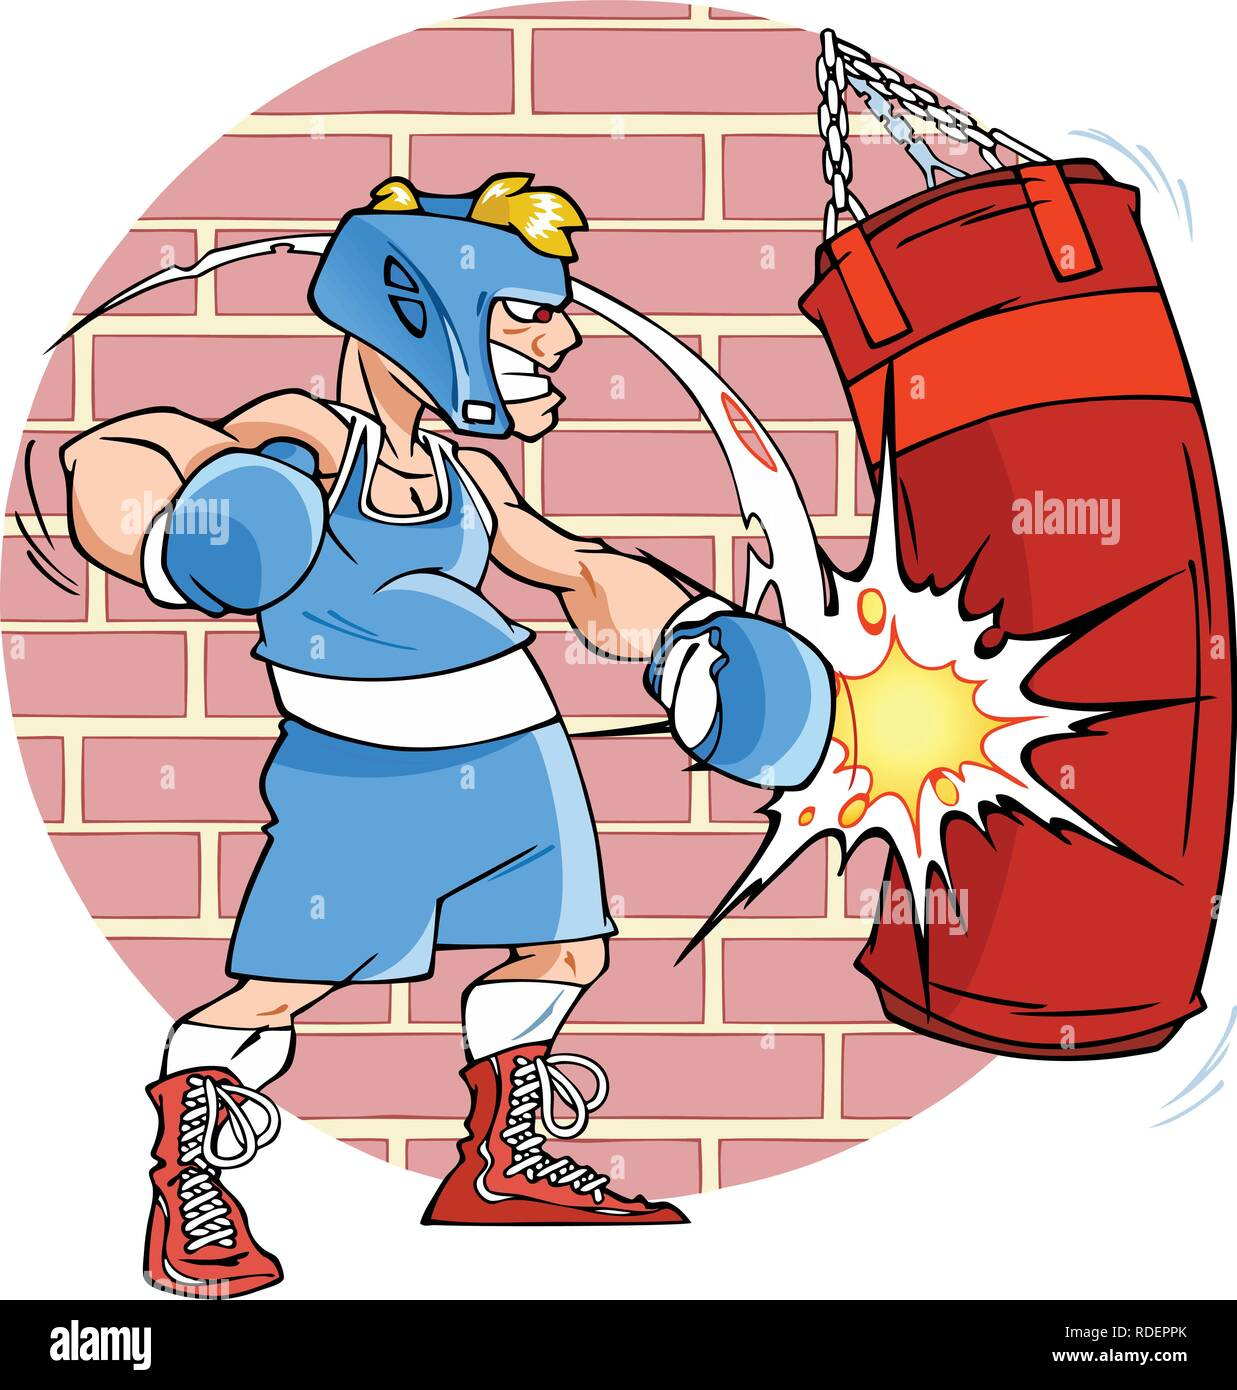 The illustration shows a man boxer on training. He fulfills blows at a punching bag. Illustration done in cartoon style, background on a separate laye - Stock Vector